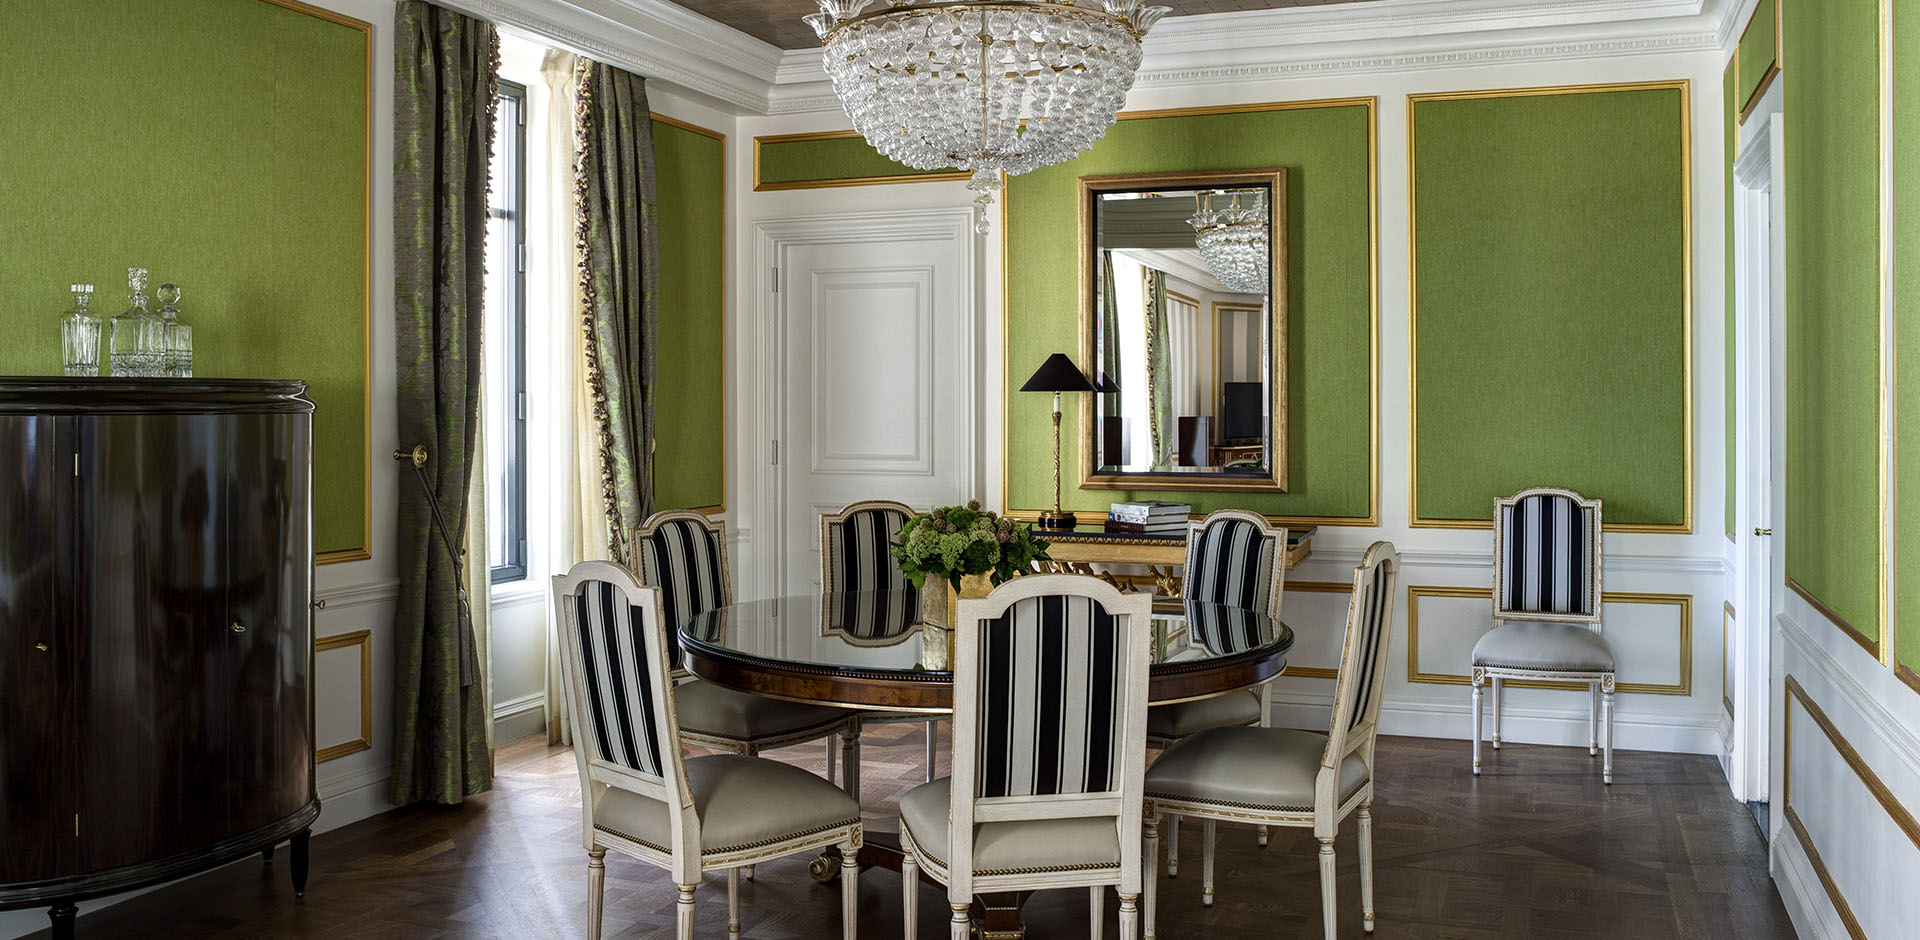 St Regis, New York - Royal Dining Room